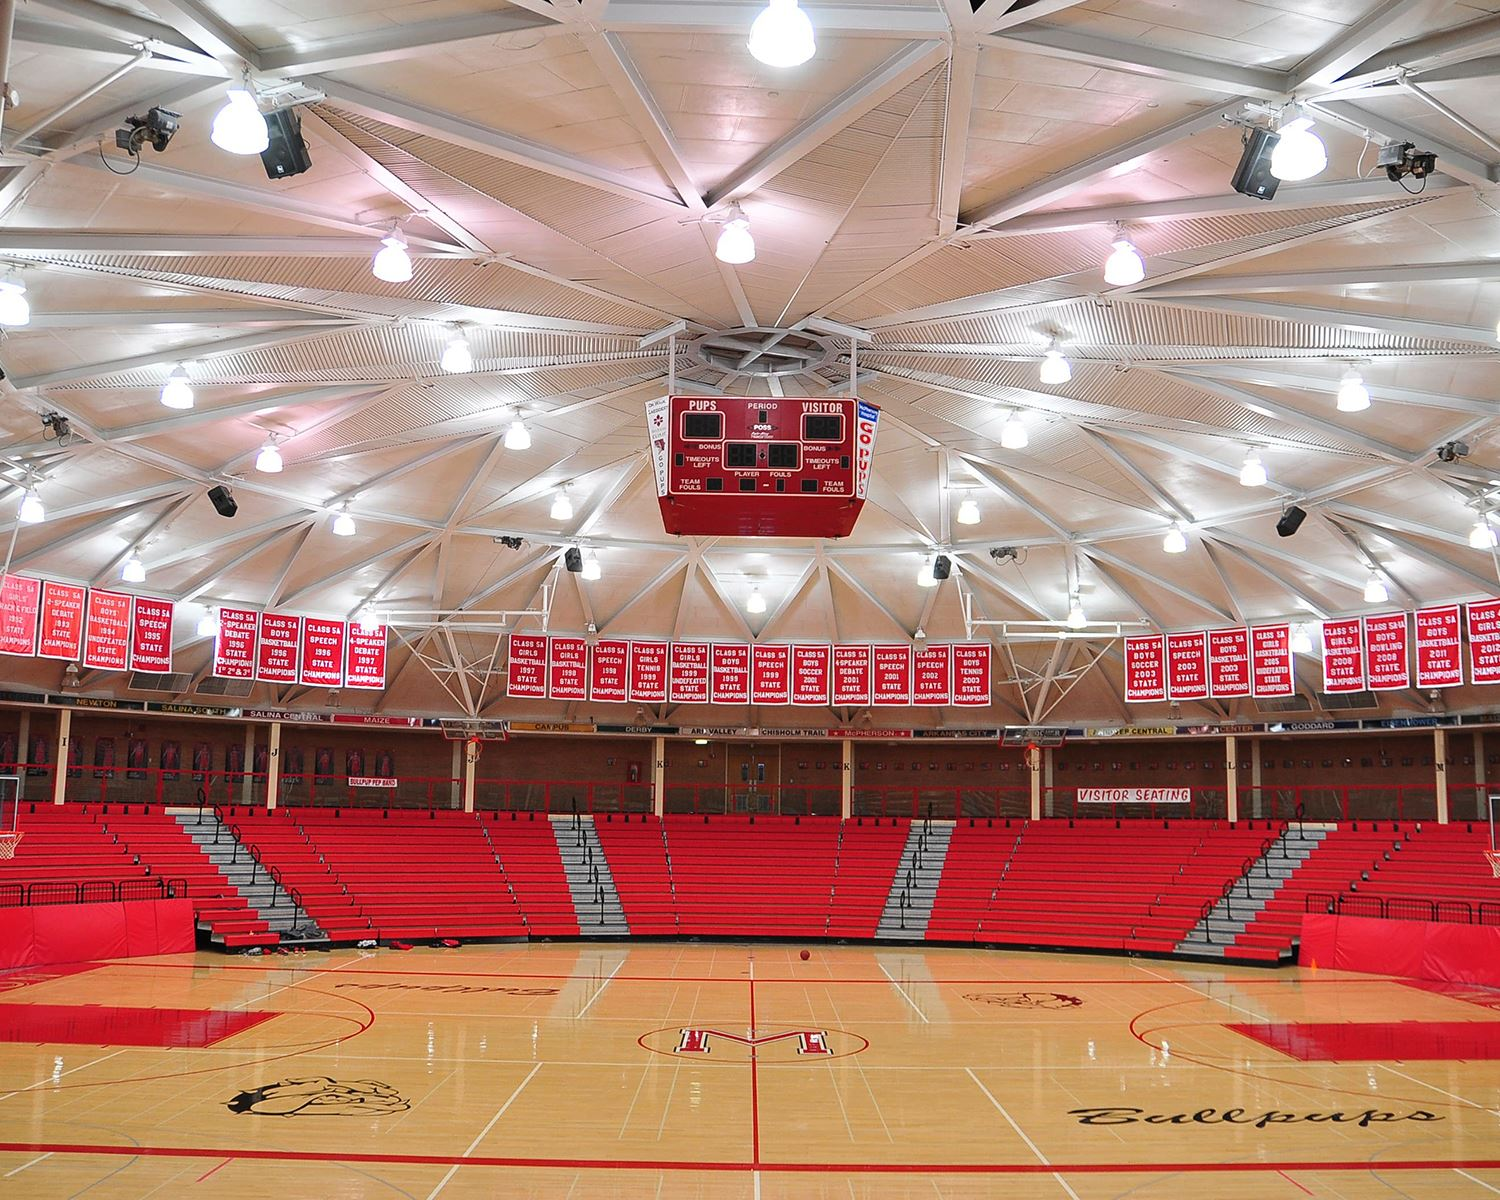 McPherson High School basketball court with red bleachers